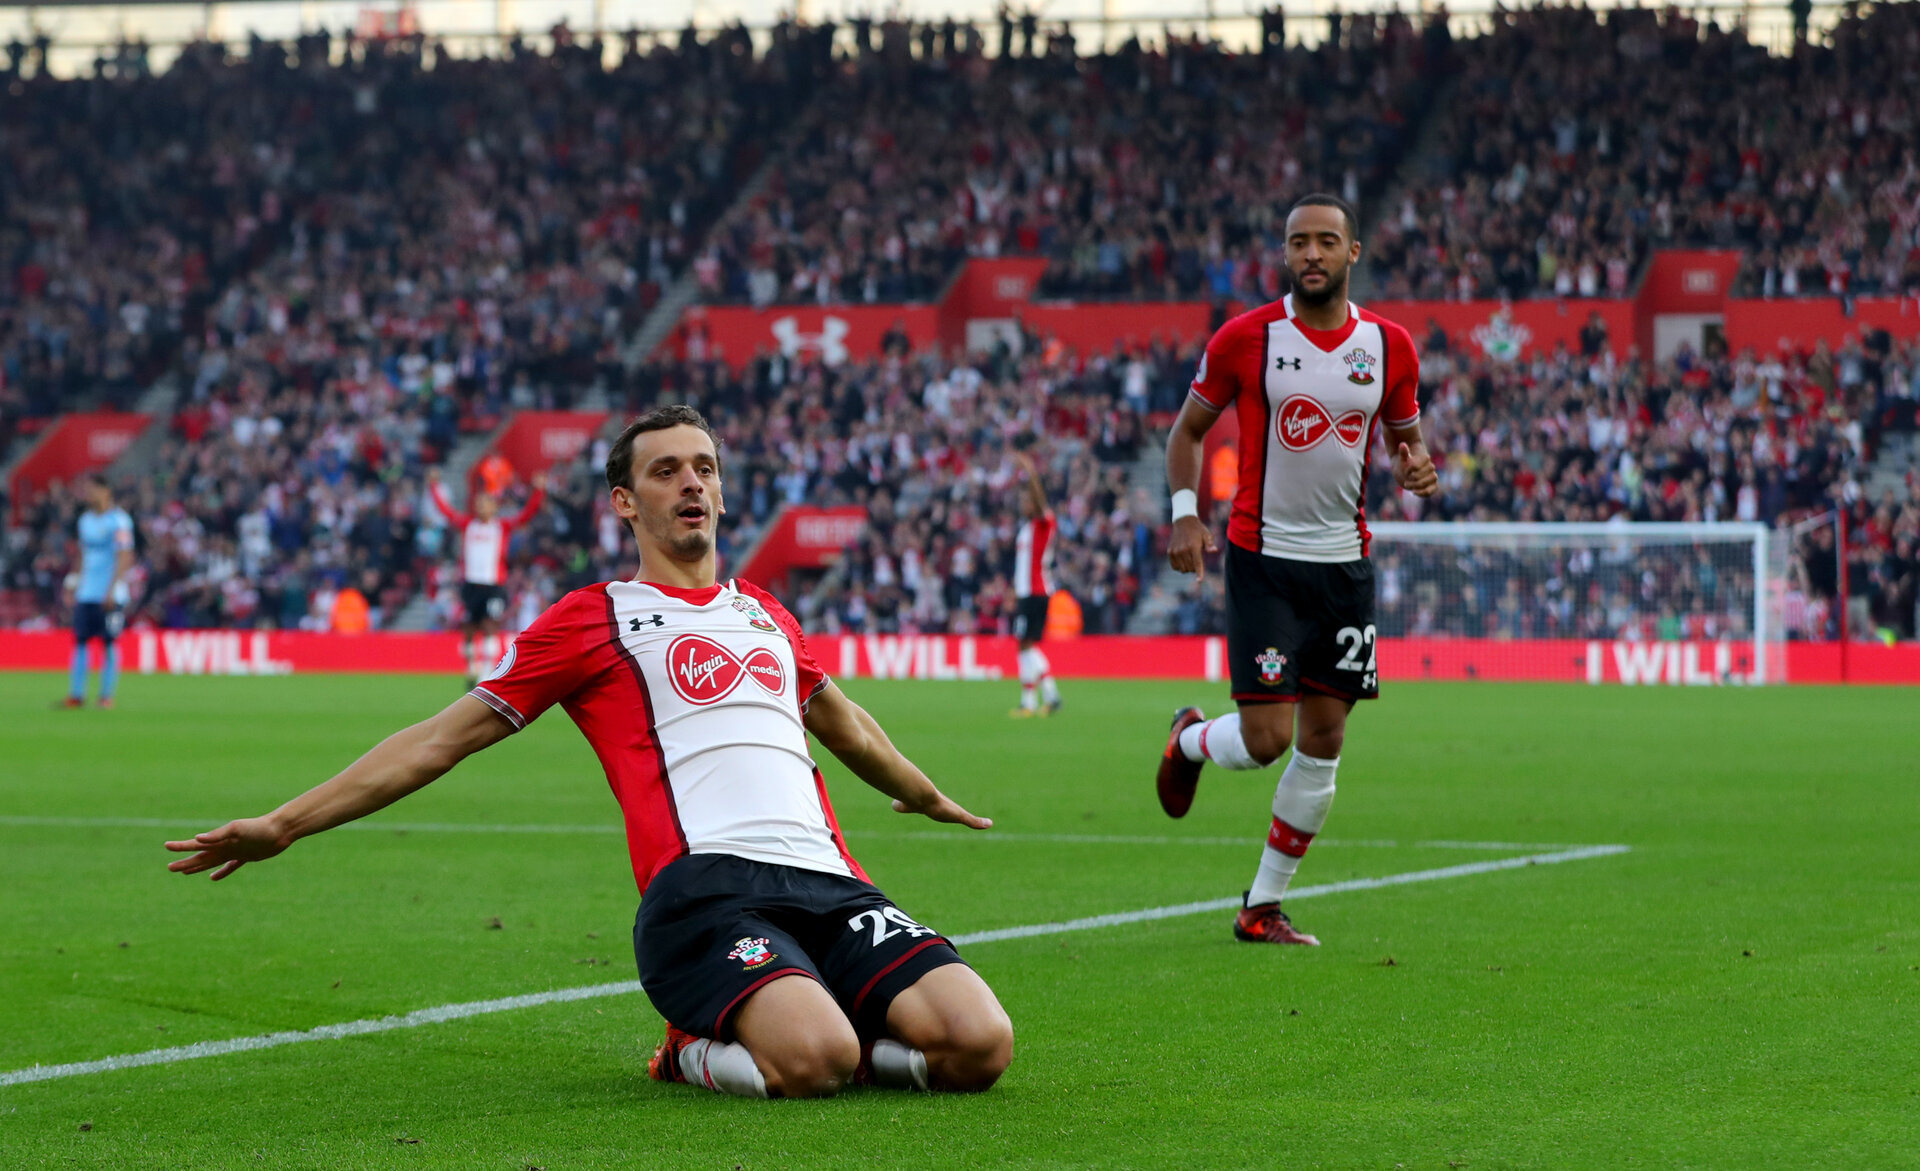 SOUTHAMPTON, ENGLAND - OCTOBER 15: Southampton's Manolo Gabbiaidini celebrates after equalising during the Premier League match between Southampton and Newcastle United at St Mary's Stadium on October 15, 2017 in Southampton, England. (Photo by Matt Watson/Southampton FC via Getty Images)